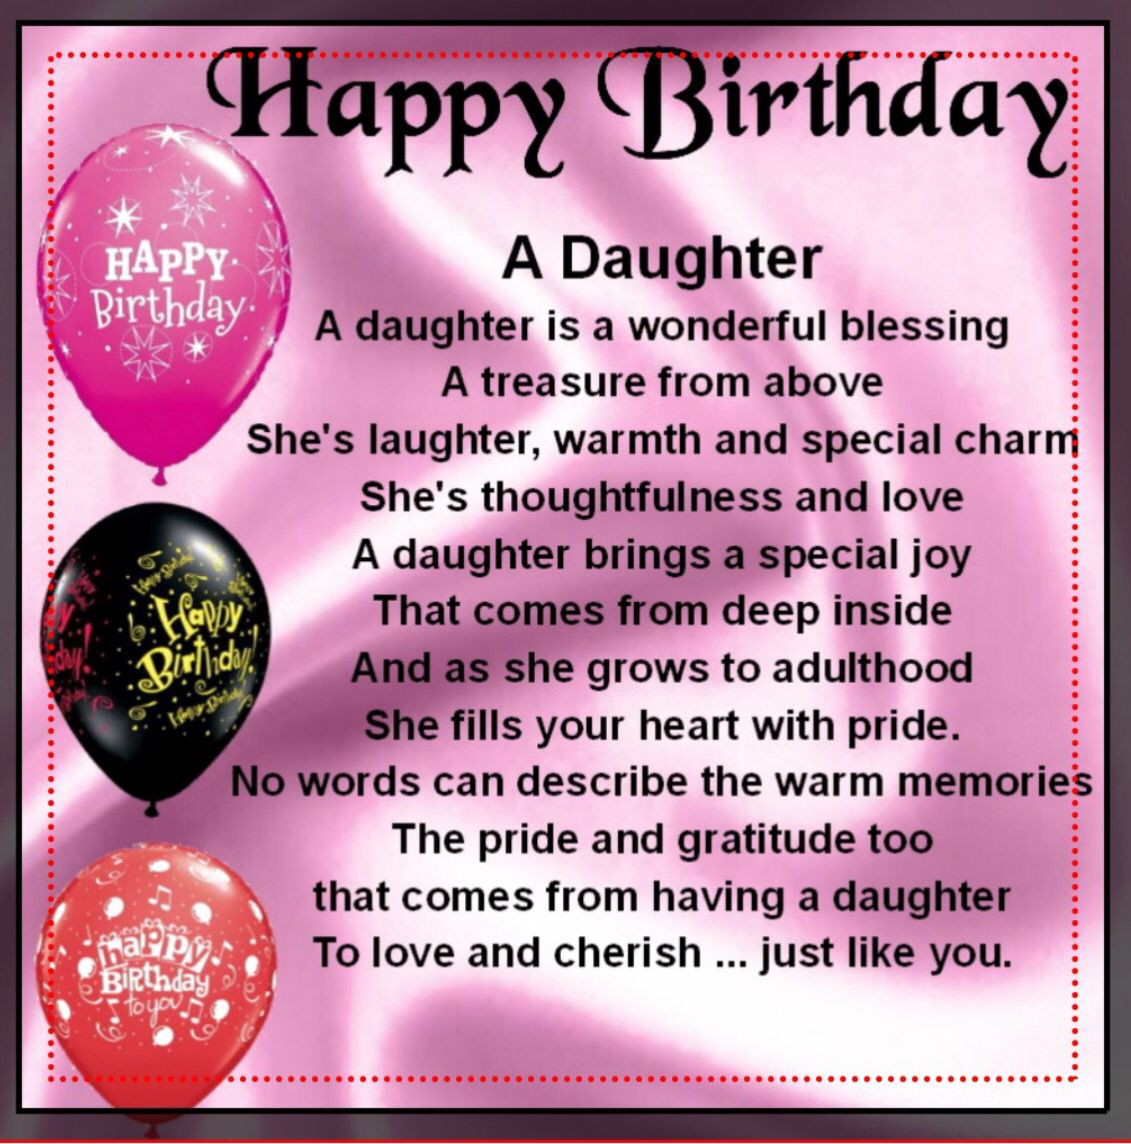 Best ideas about Birthday Wishes For A Daughter . Save or Pin Happy Birthday daughter … Cute Now.